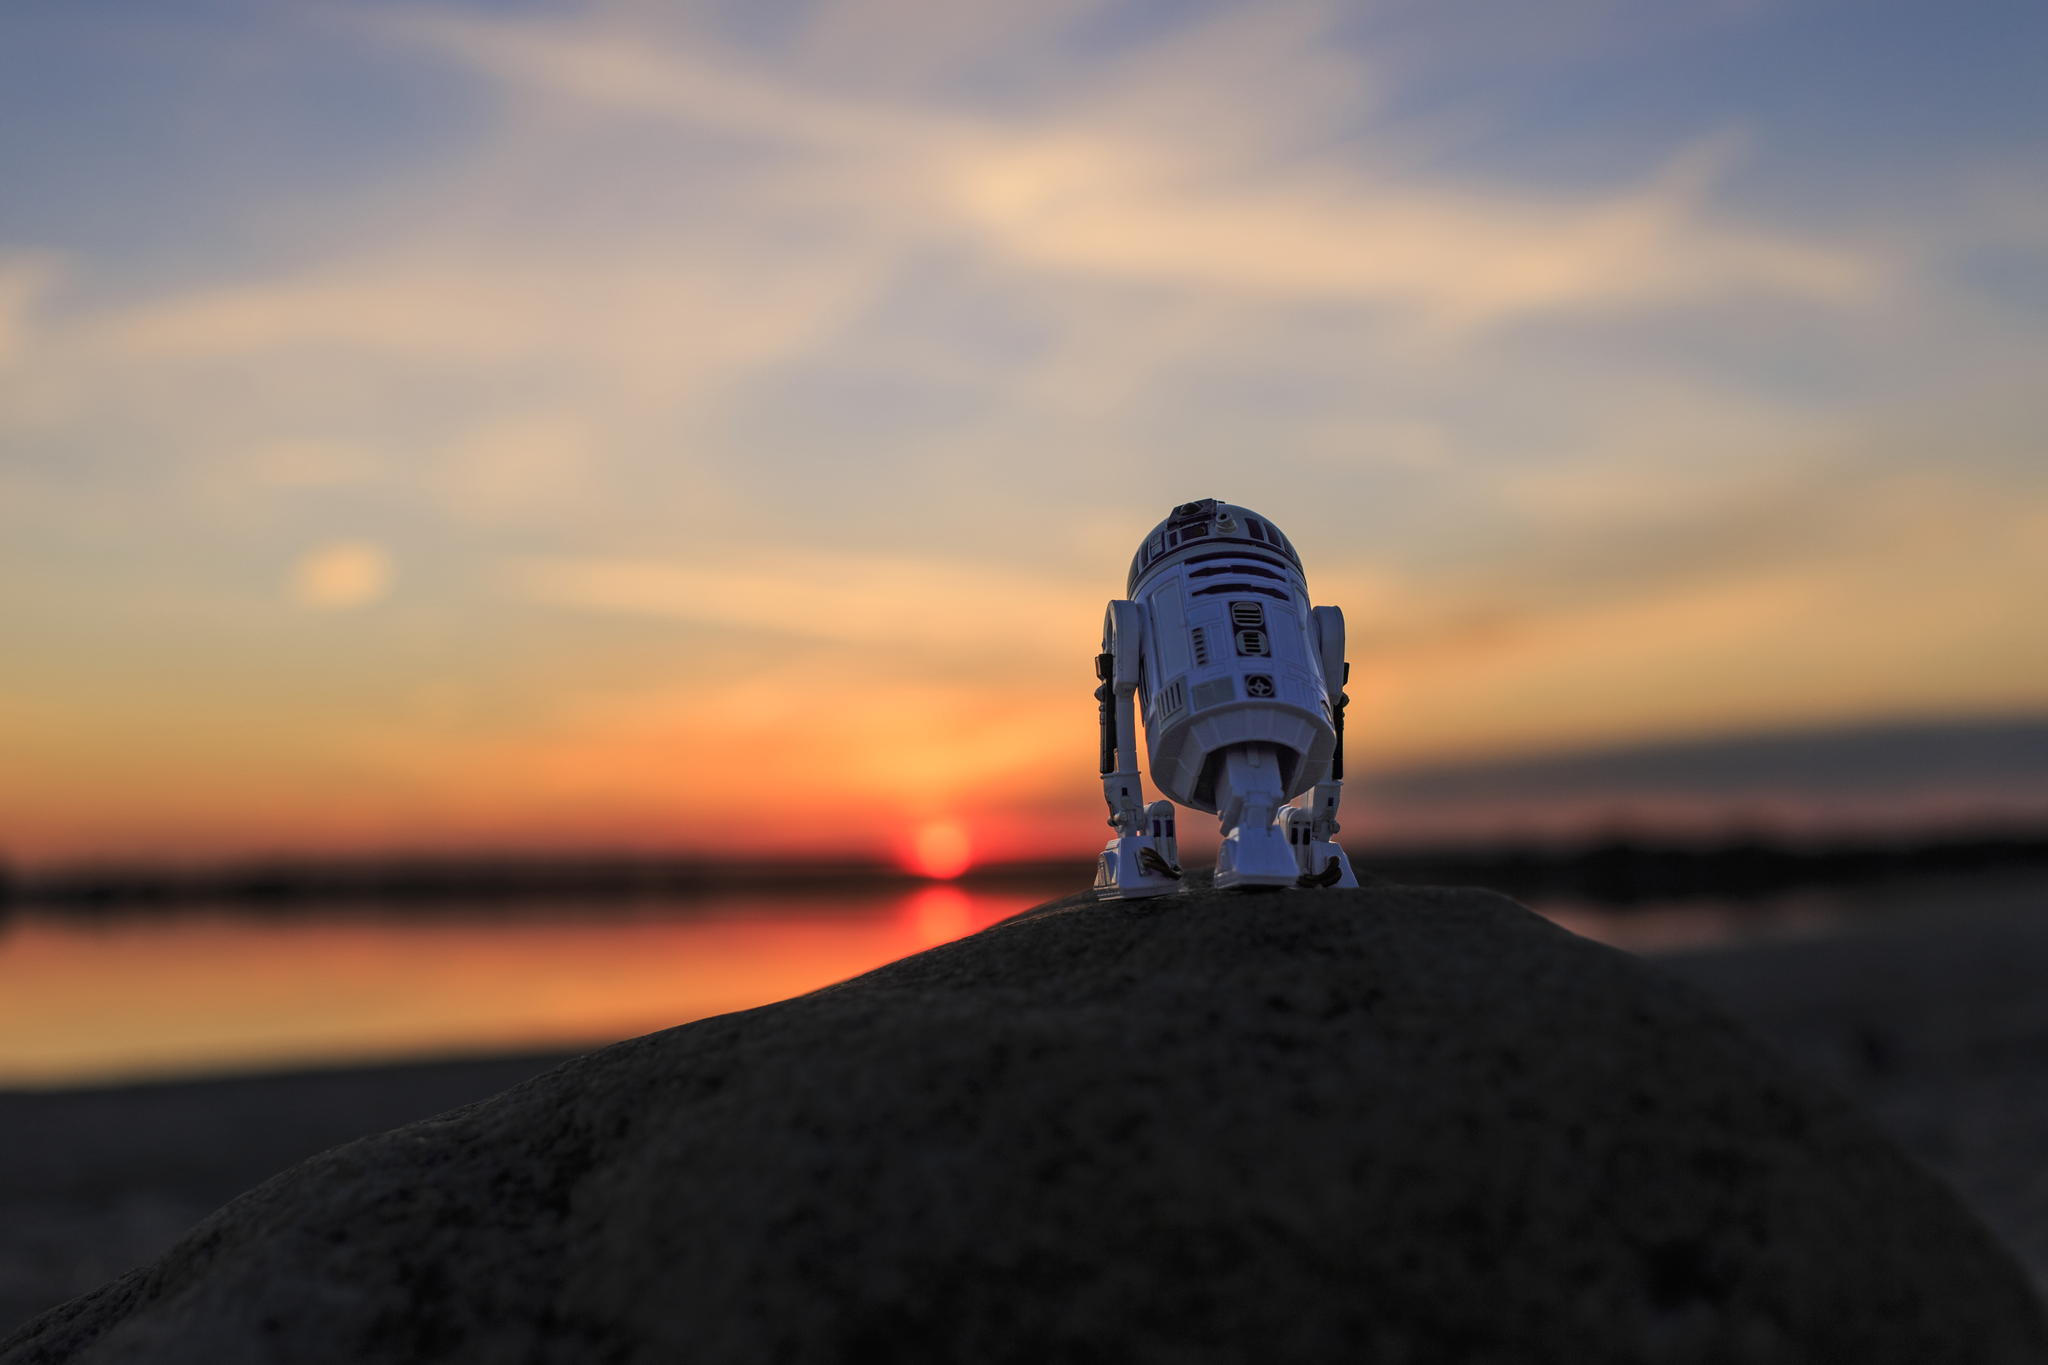 25 Reimagined Images Of R2-D2 Wandering The World Alone